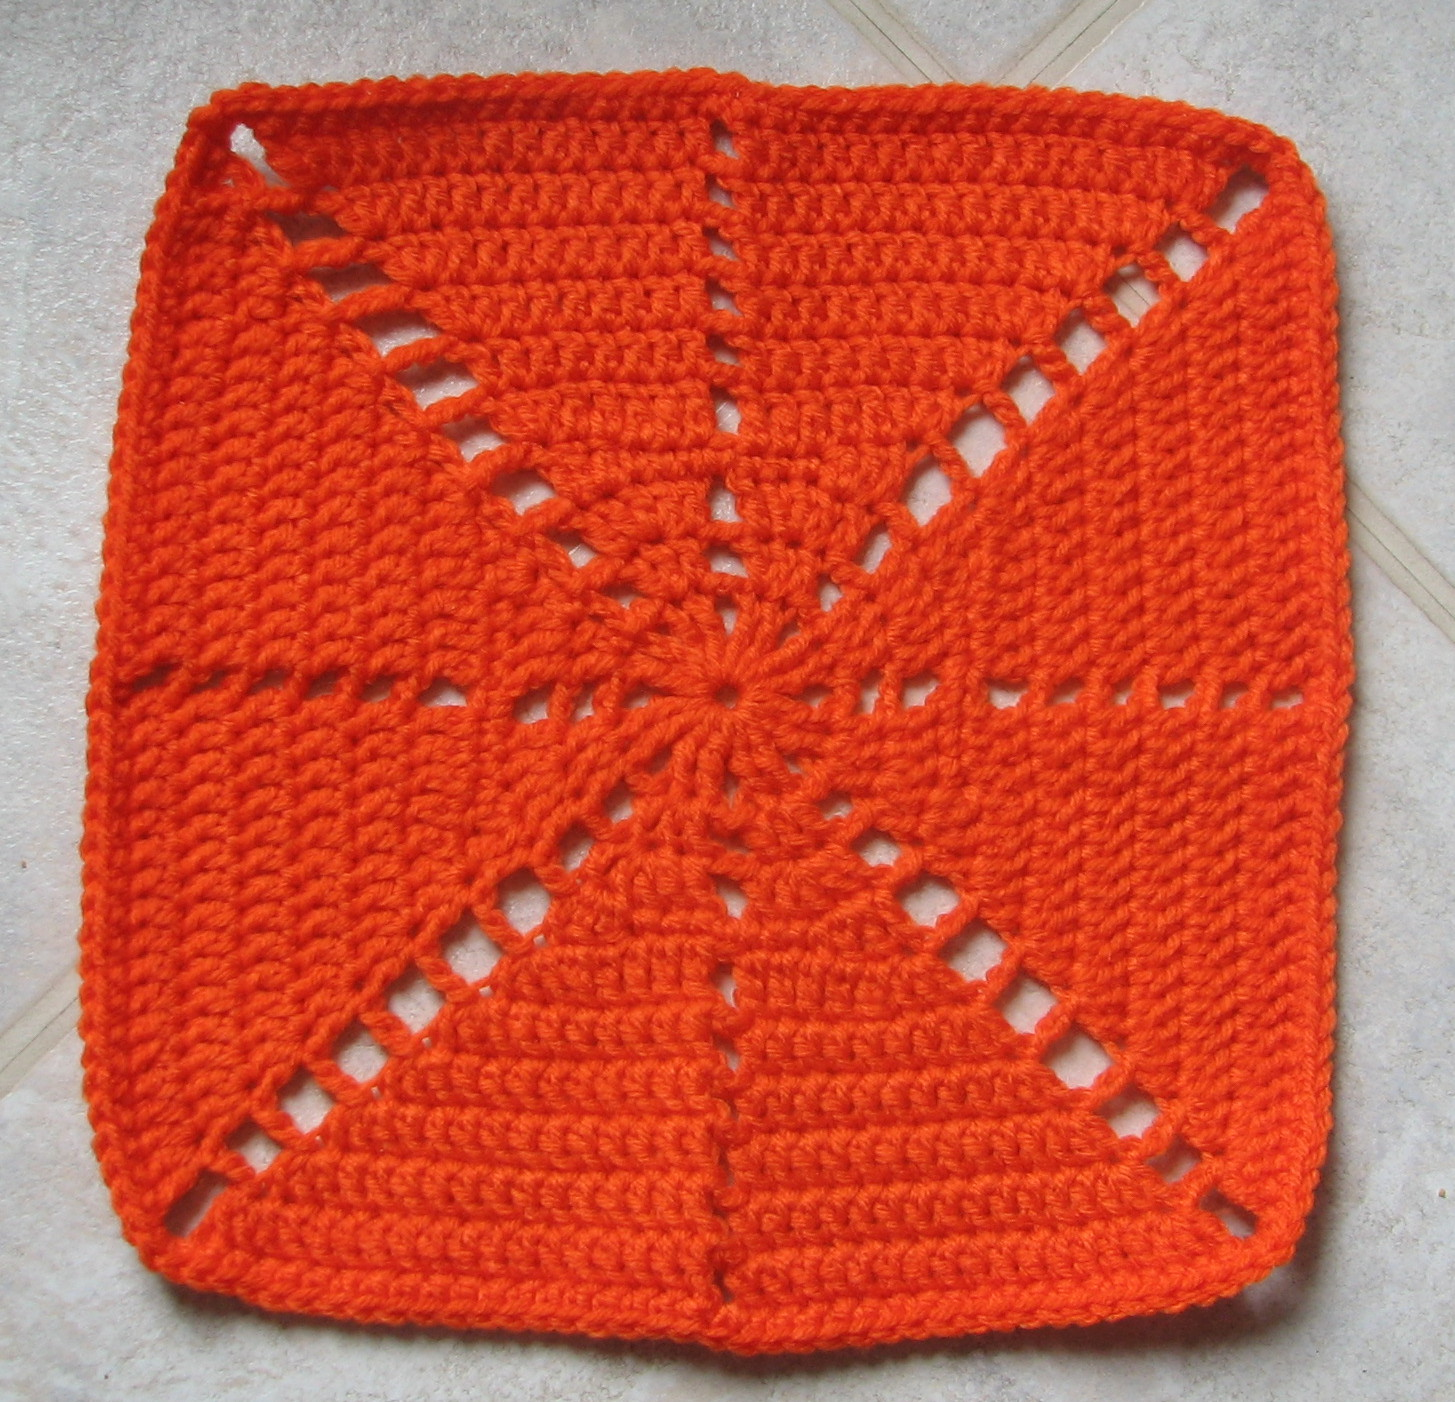 Crochet Patterns Squares : Citrus Spray Afghan Square - Ambassador Crochet Ambassador Crochet